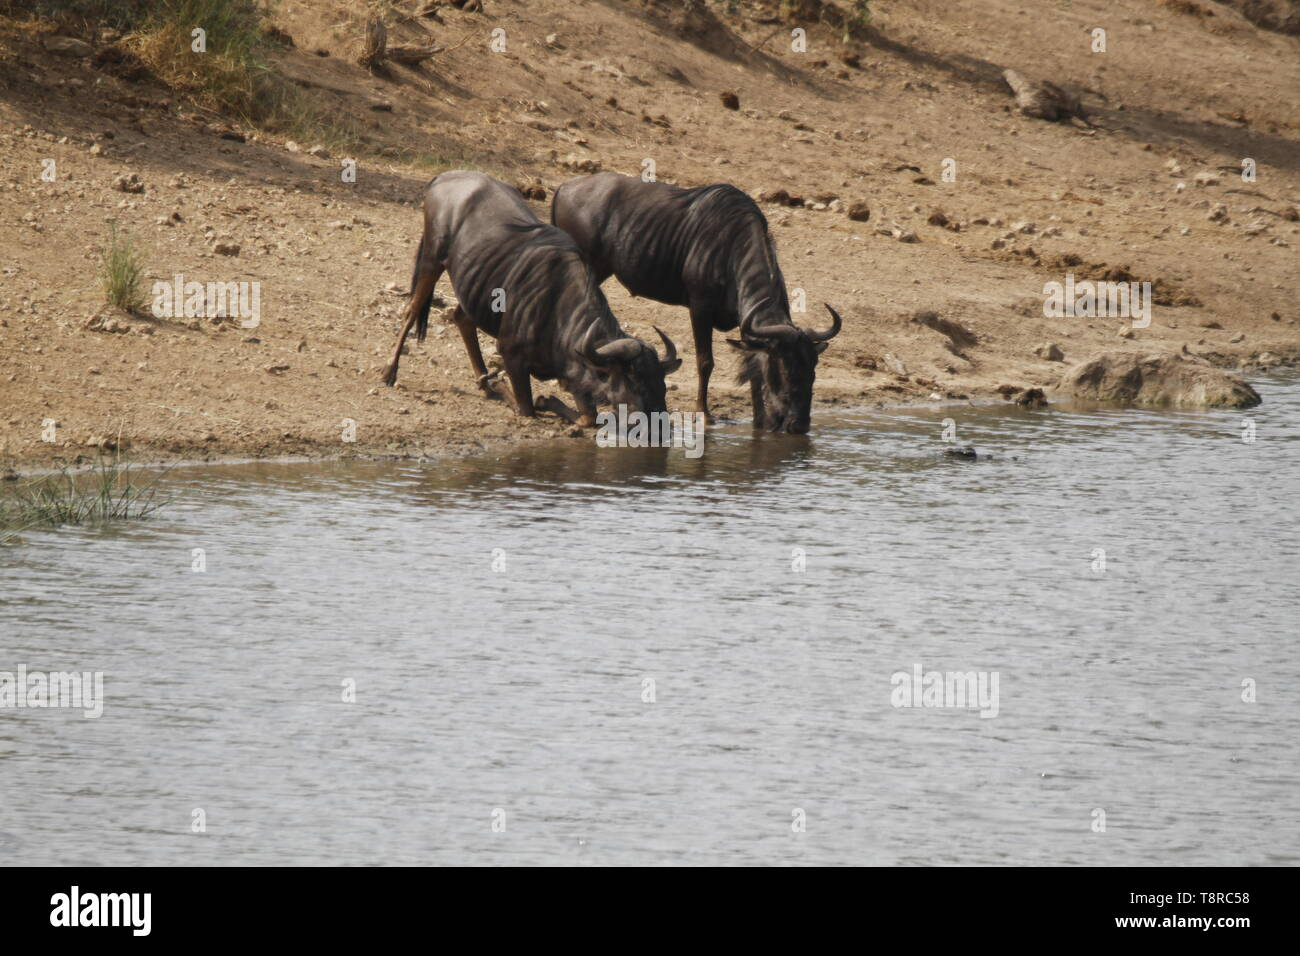 Wildebeest drinking from a river - Stock Image